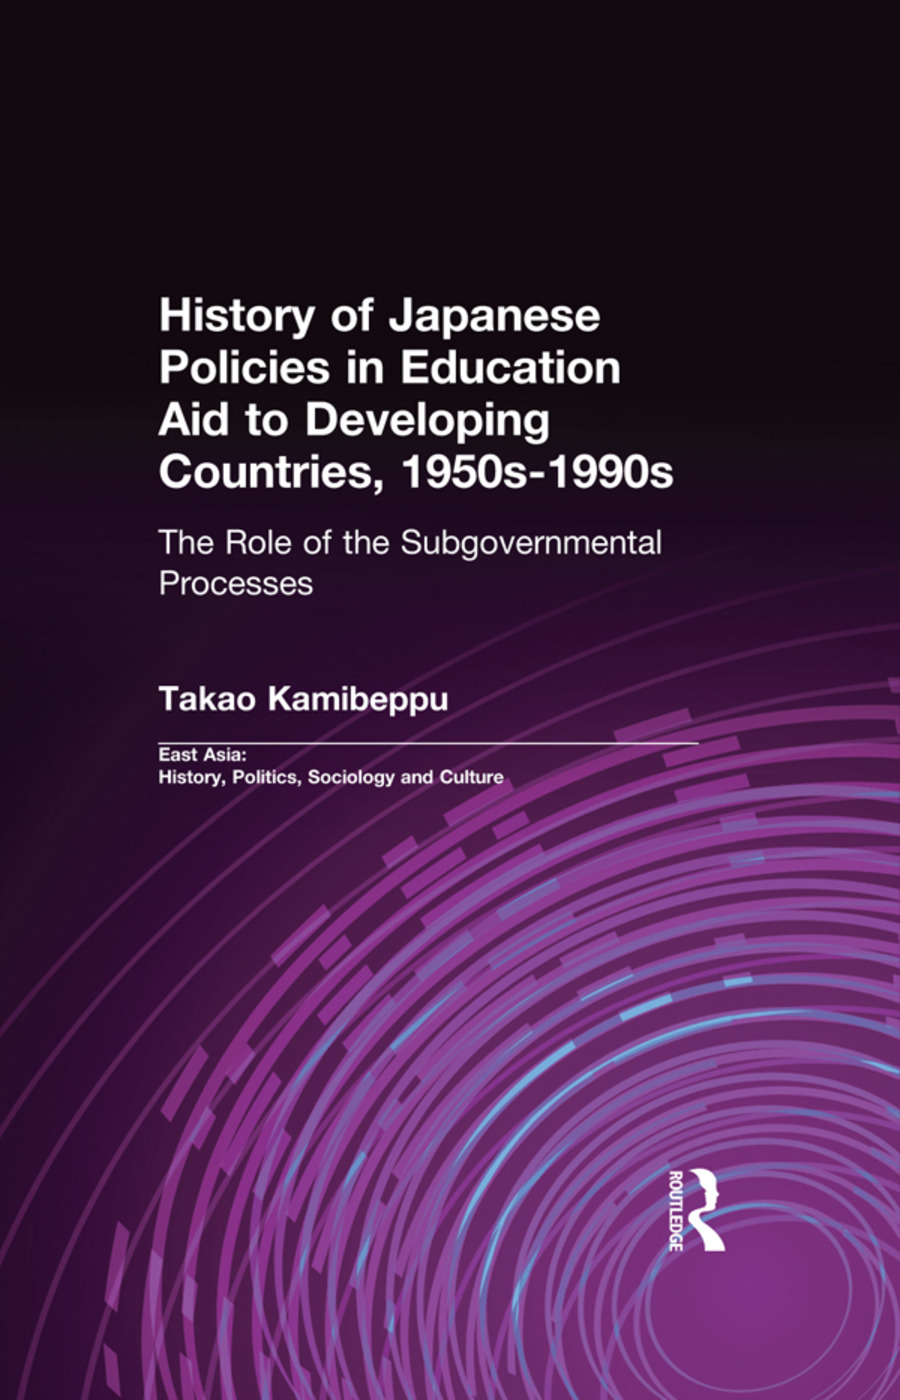 History of Japanese Policies in Education Aid to Developing Countries, 1950s-1990s: The Role of the Subgovernmental Processes, 1st Edition (Paperback) book cover